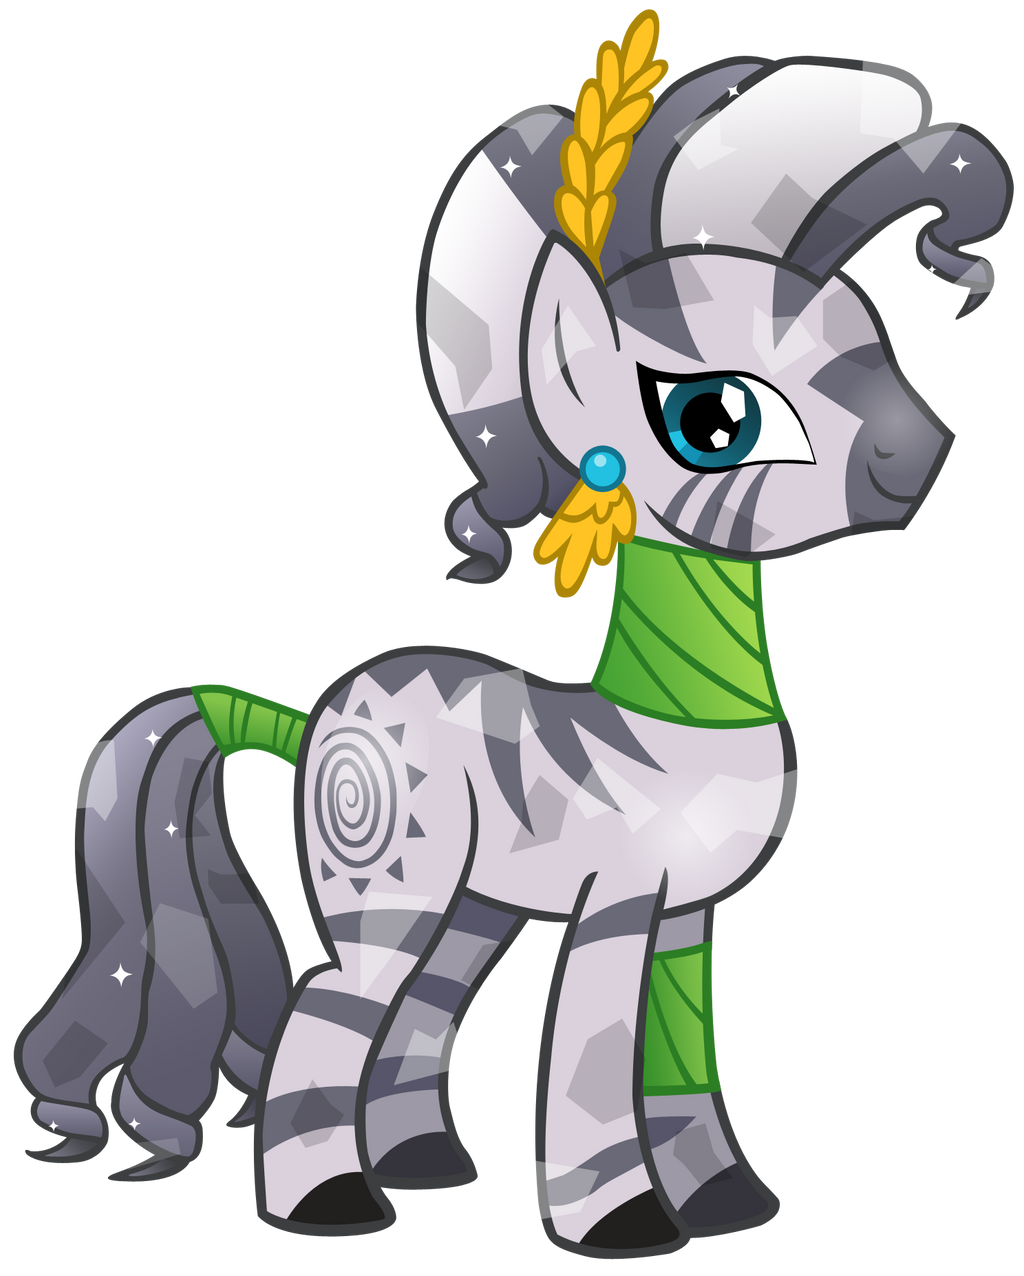 crystal_zecora_by_silvermapwolf-d6ti2mh.